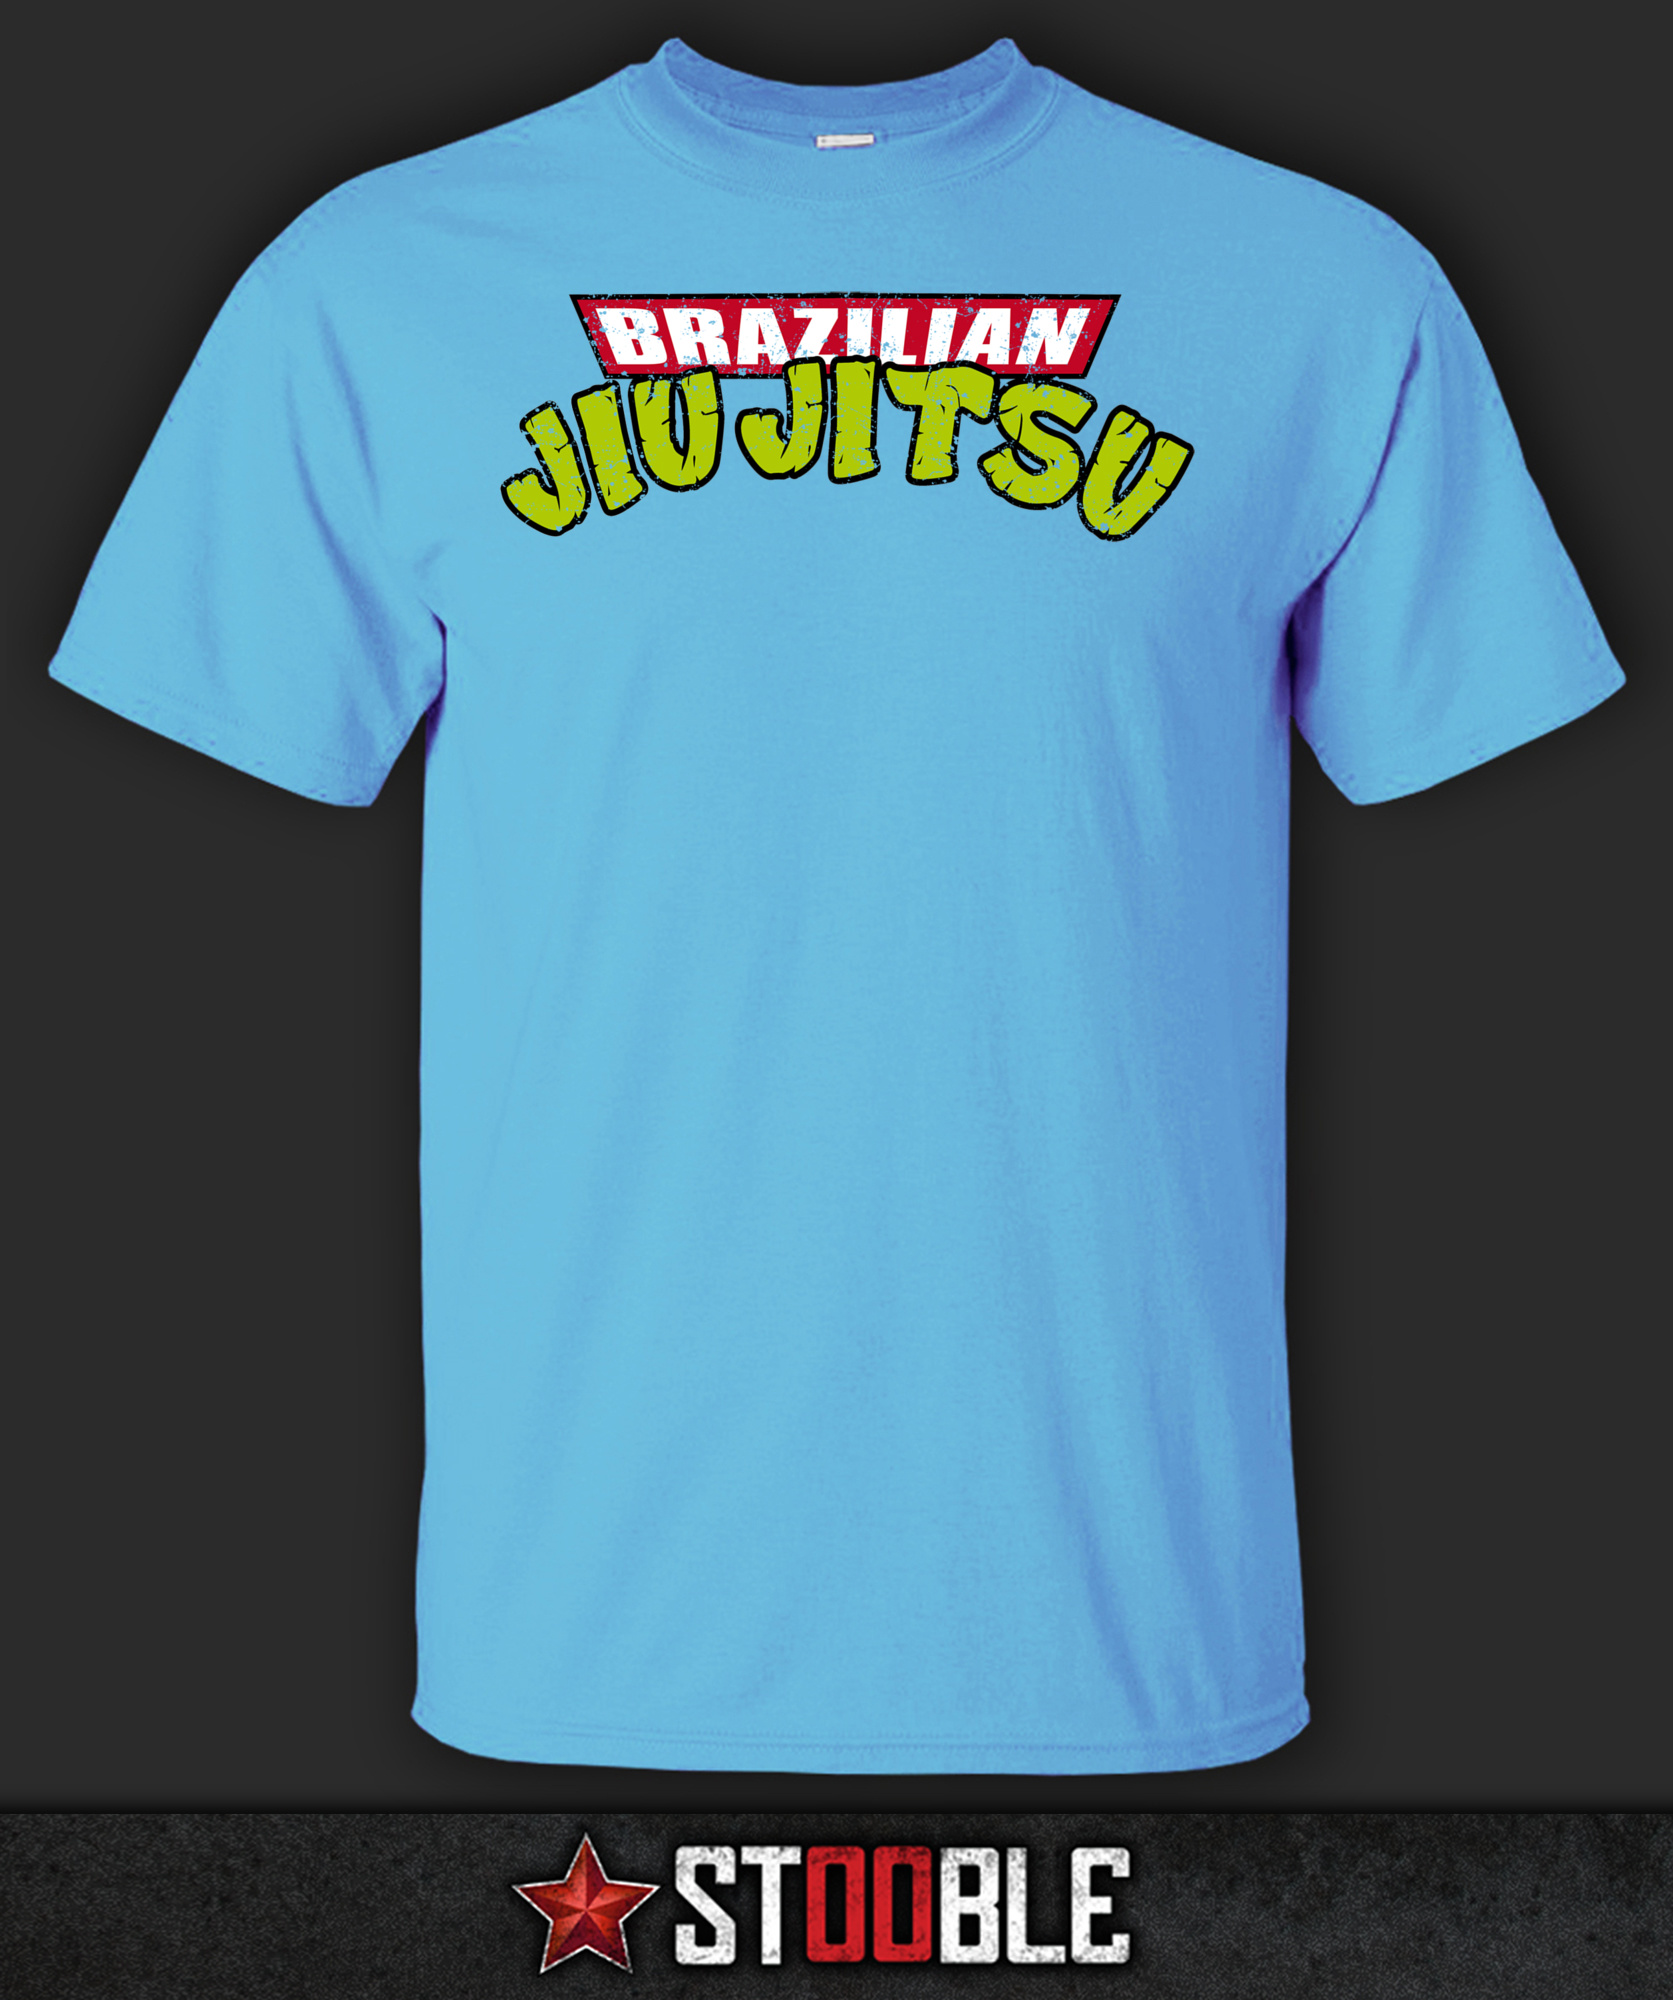 Brazilian Jiu Jitsu BJJ Turtle T-Shirt - New - Direct from Manufacturer